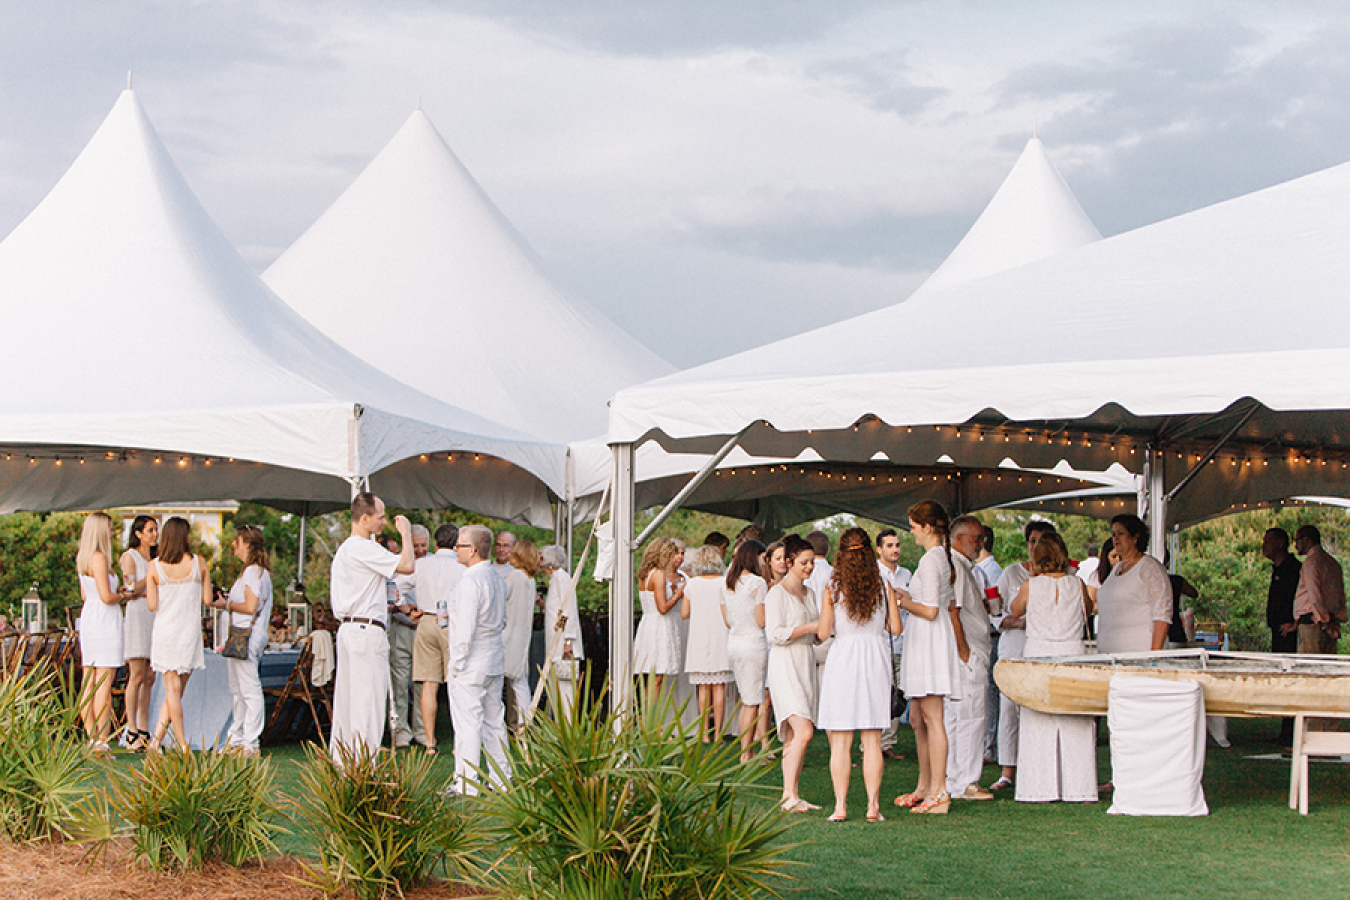 white-party-under-marquee-tent http://itgirlweddings.com/white-party-rehearsal-dinner/